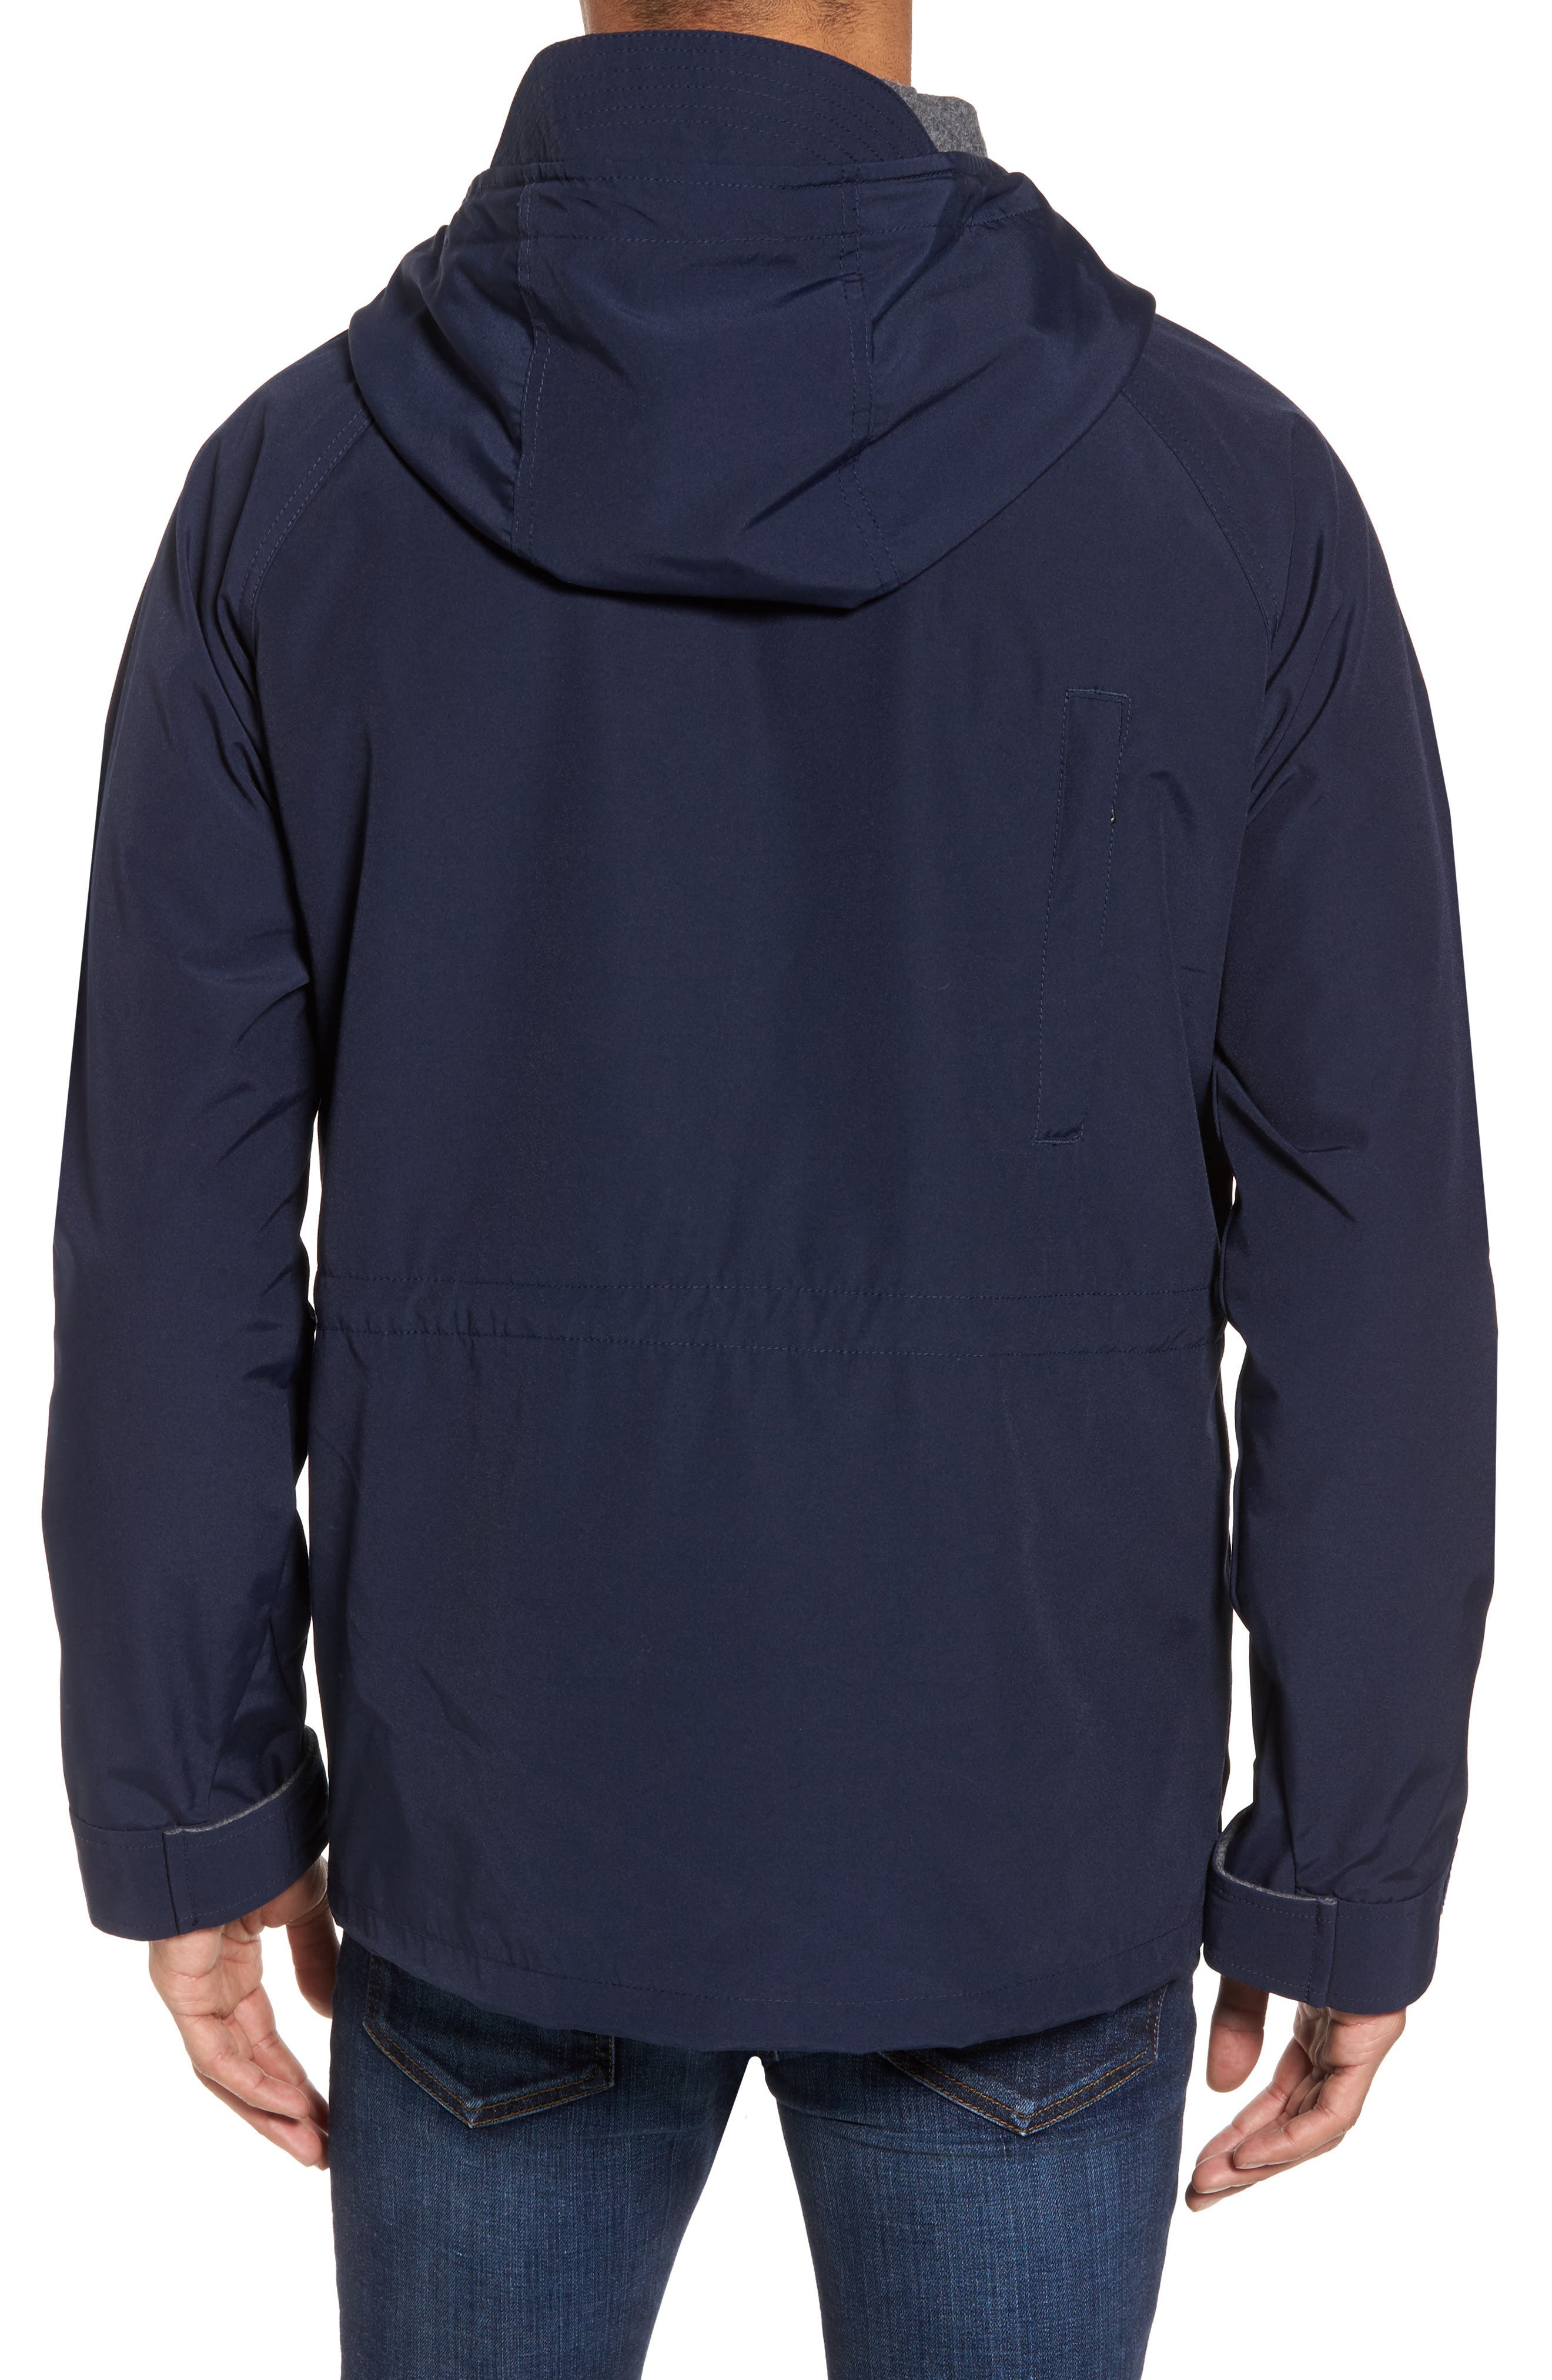 Kasson Parka,                             Alternate thumbnail 2, color,                             Navy